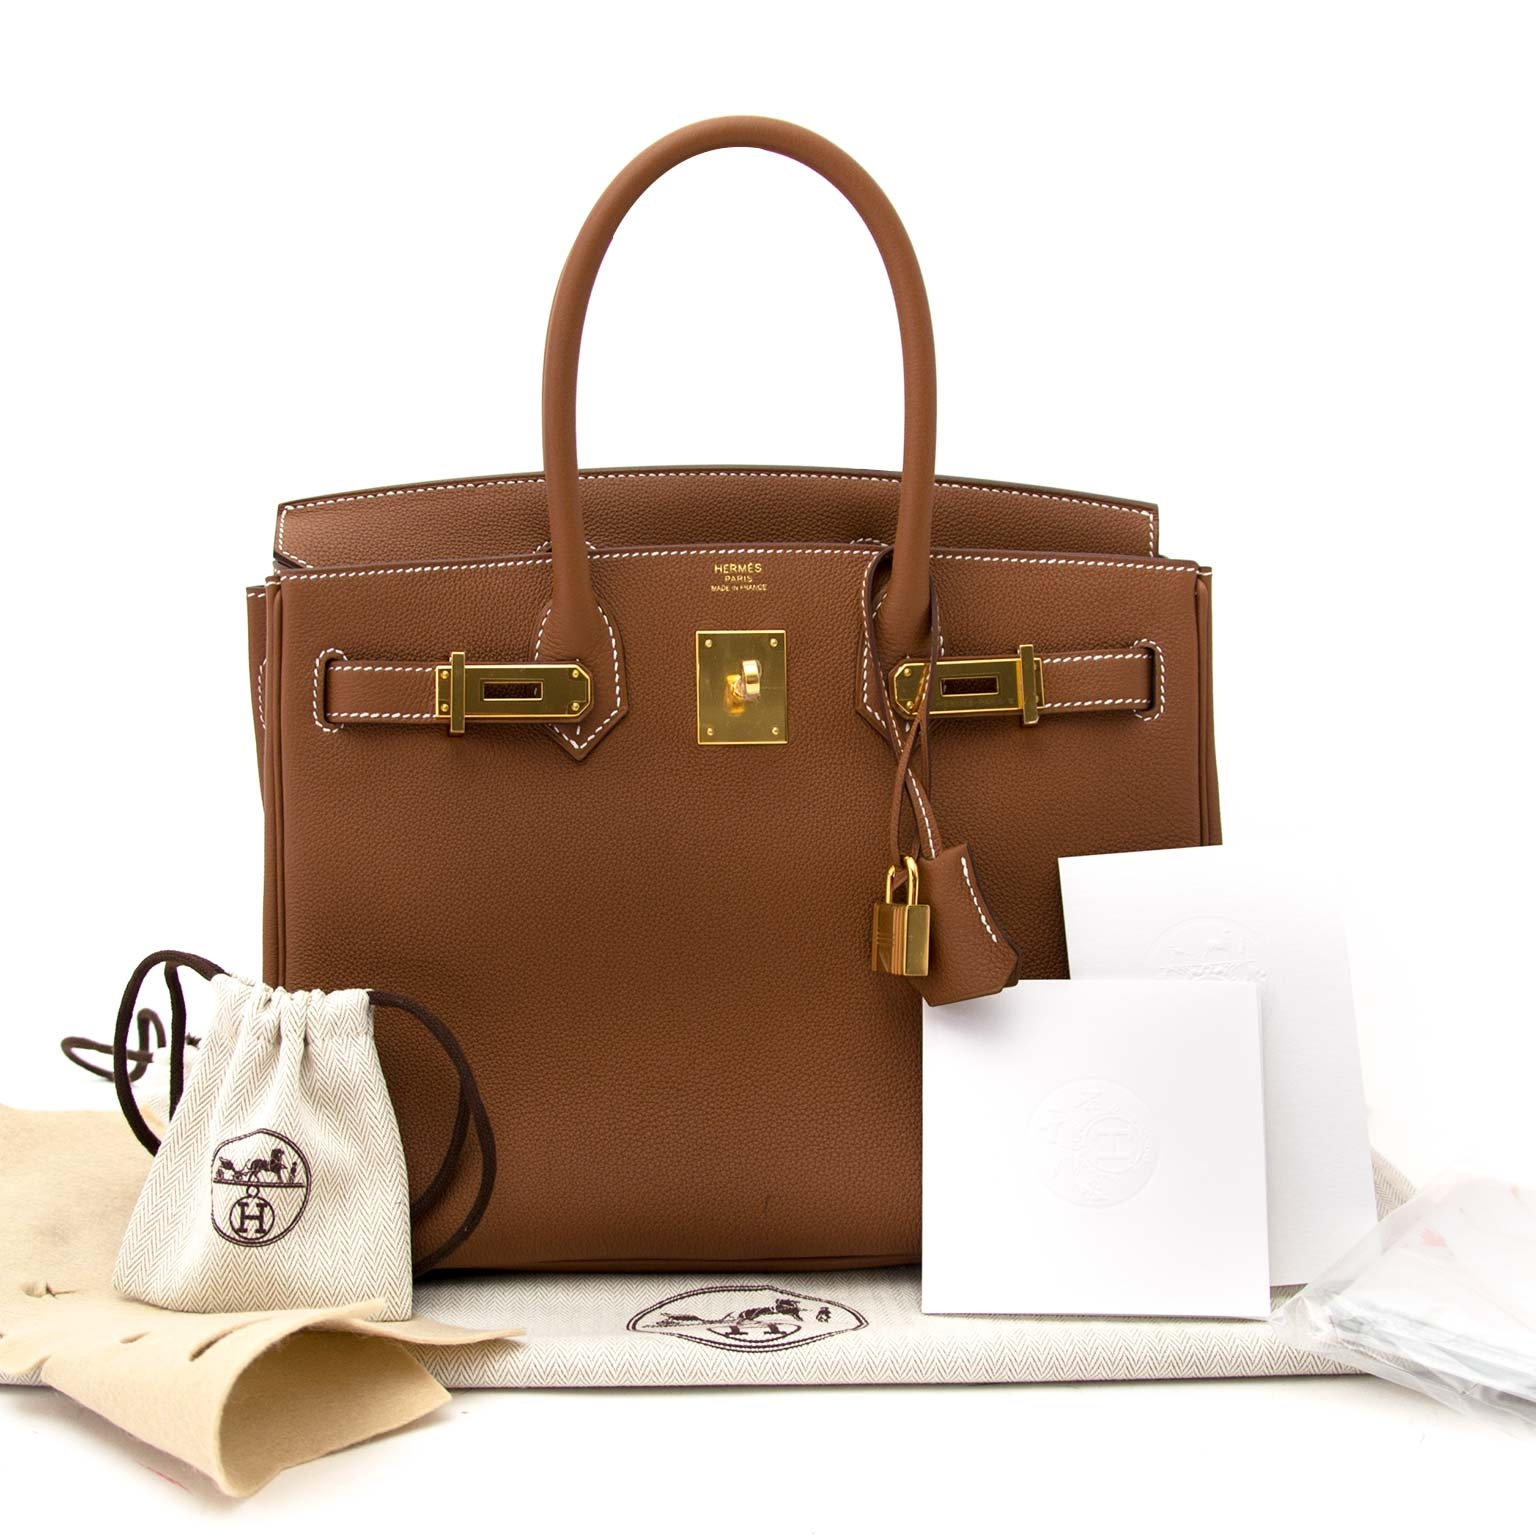 5904005afb8d Labellov hermes birkin 30 togo gold ghw ○ Buy and Sell Authentic Luxury